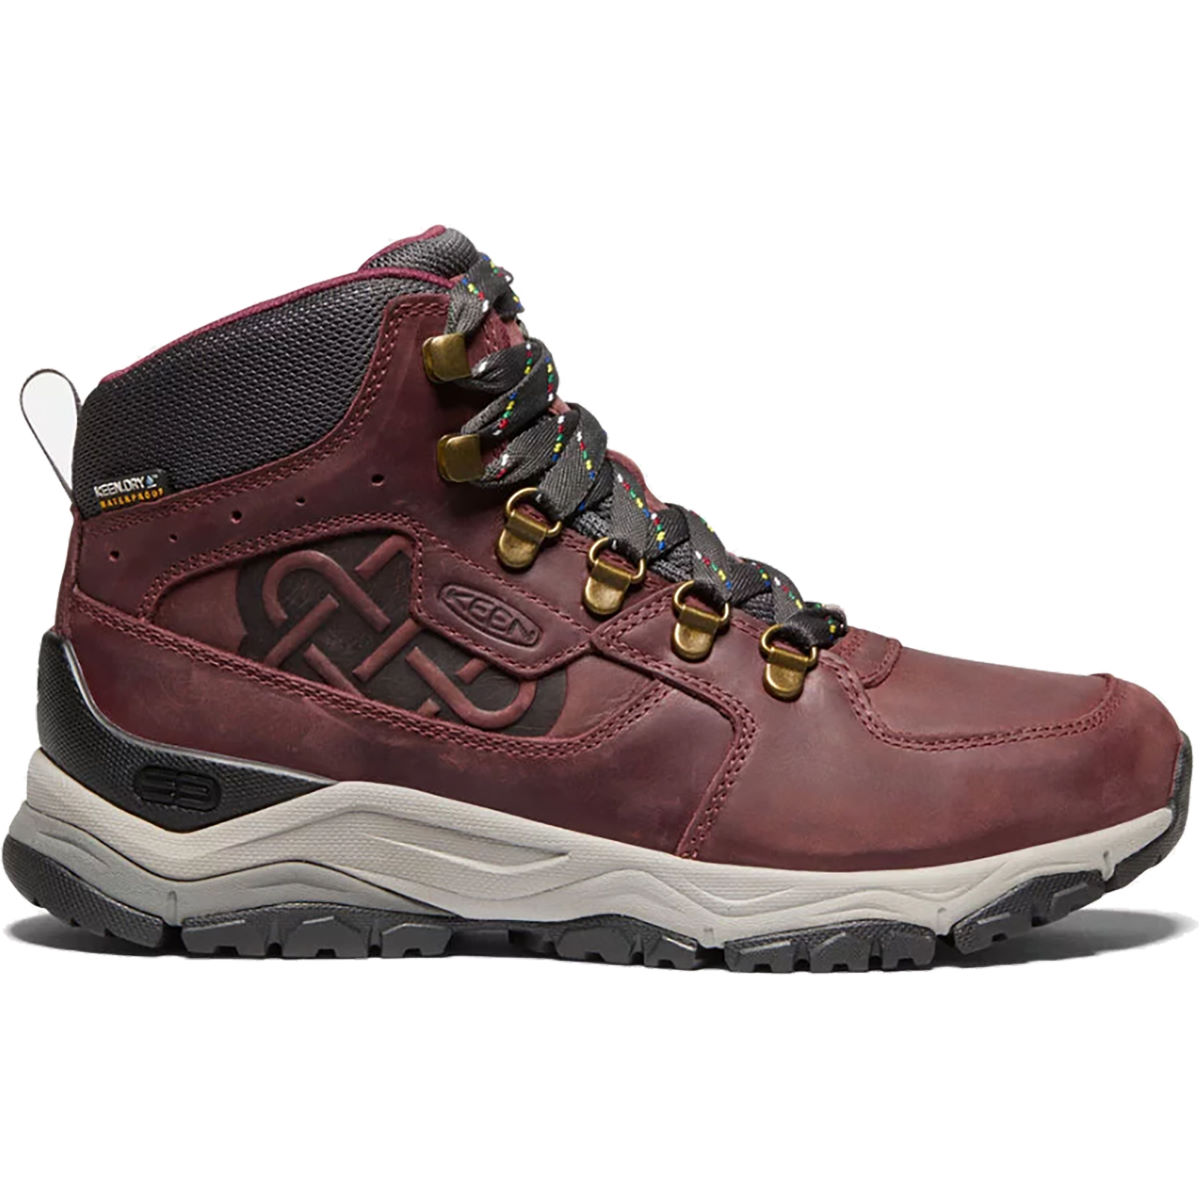 Keen Keen womens Innate Leather Mid Boots   Boots